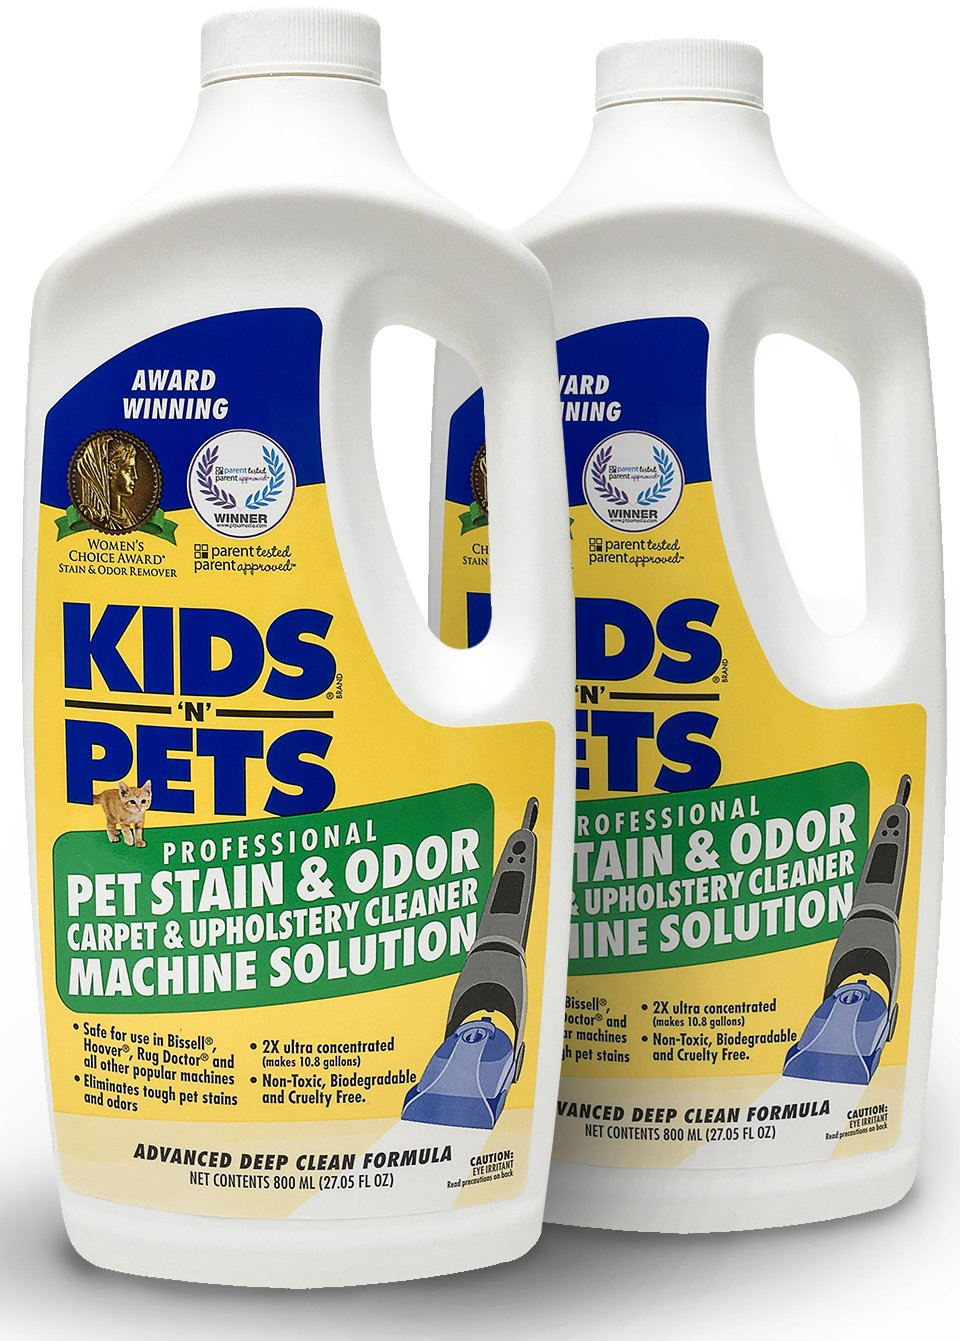 KIDS 'N' PETS - Pet Stain & Odor - Carpet & Upholstery Cleaner Machine Solution - Pack of 2-27.05 oz - Professional Strength Formula Deeply Cleans Carpet & Upholstery - Non-Toxic & Child Safe by KIDS 'N' PETS